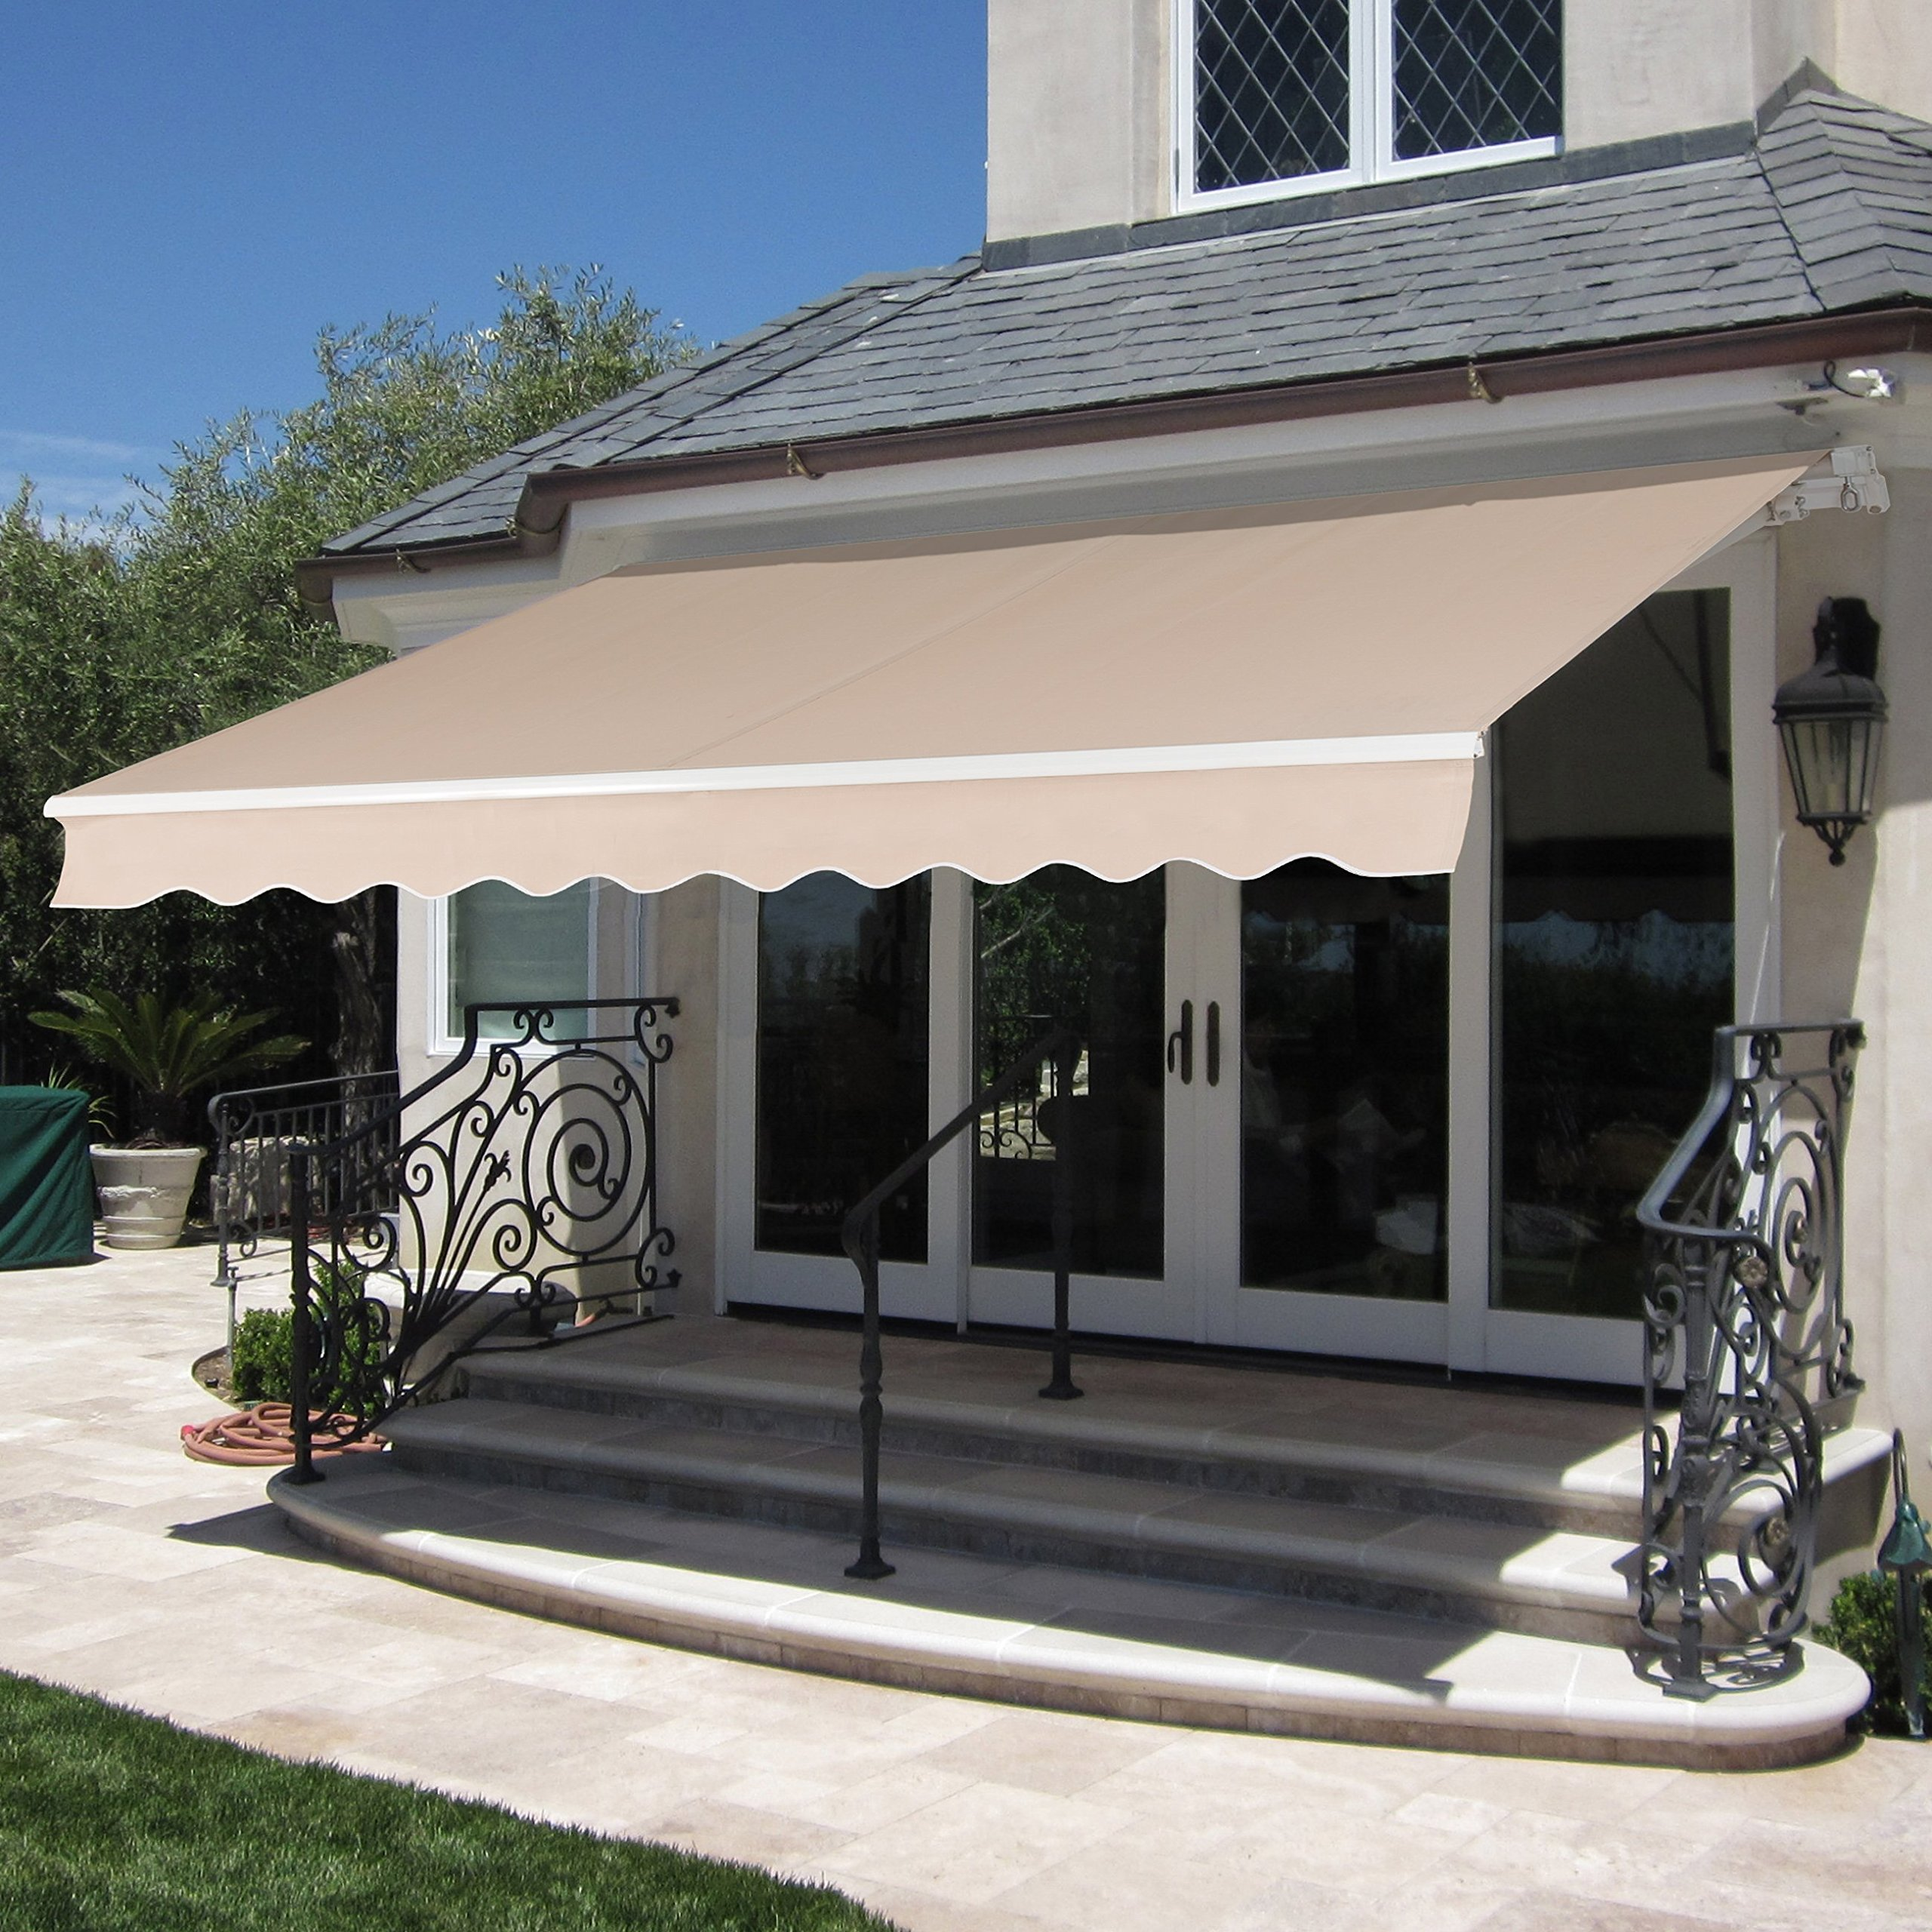 Best Choice Products Patio Manual Patio 8.2u0027x6.5u0027 Retractable Deck Awning Sunshade & Best Rated in Patio Awnings u0026 Helpful Customer Reviews - Amazon.com